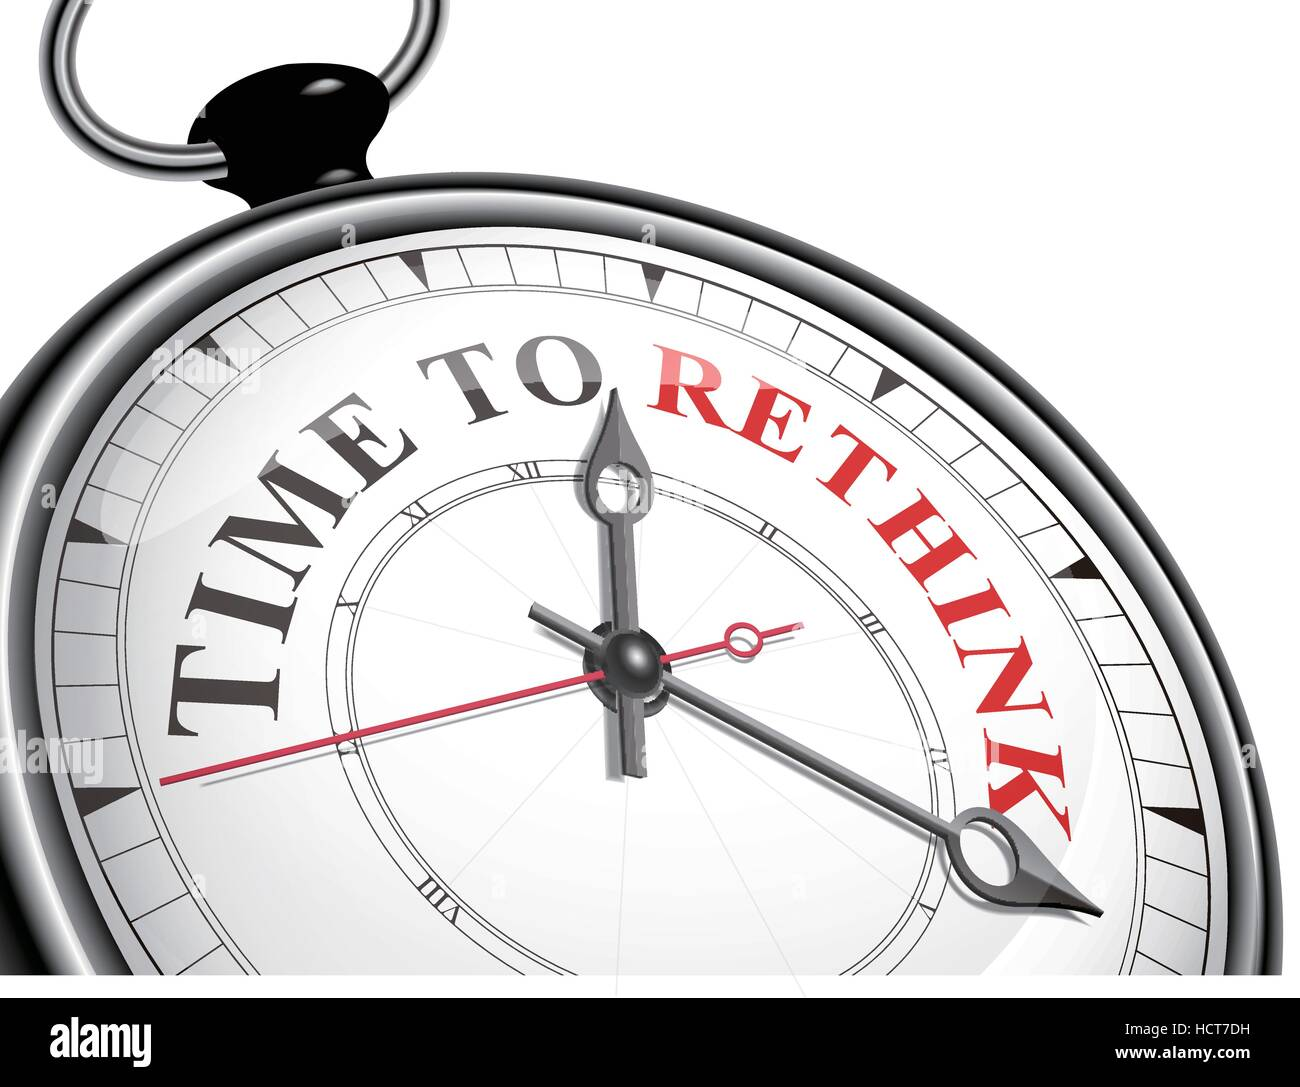 time to rethink concept clock isolated on white background - Stock Image